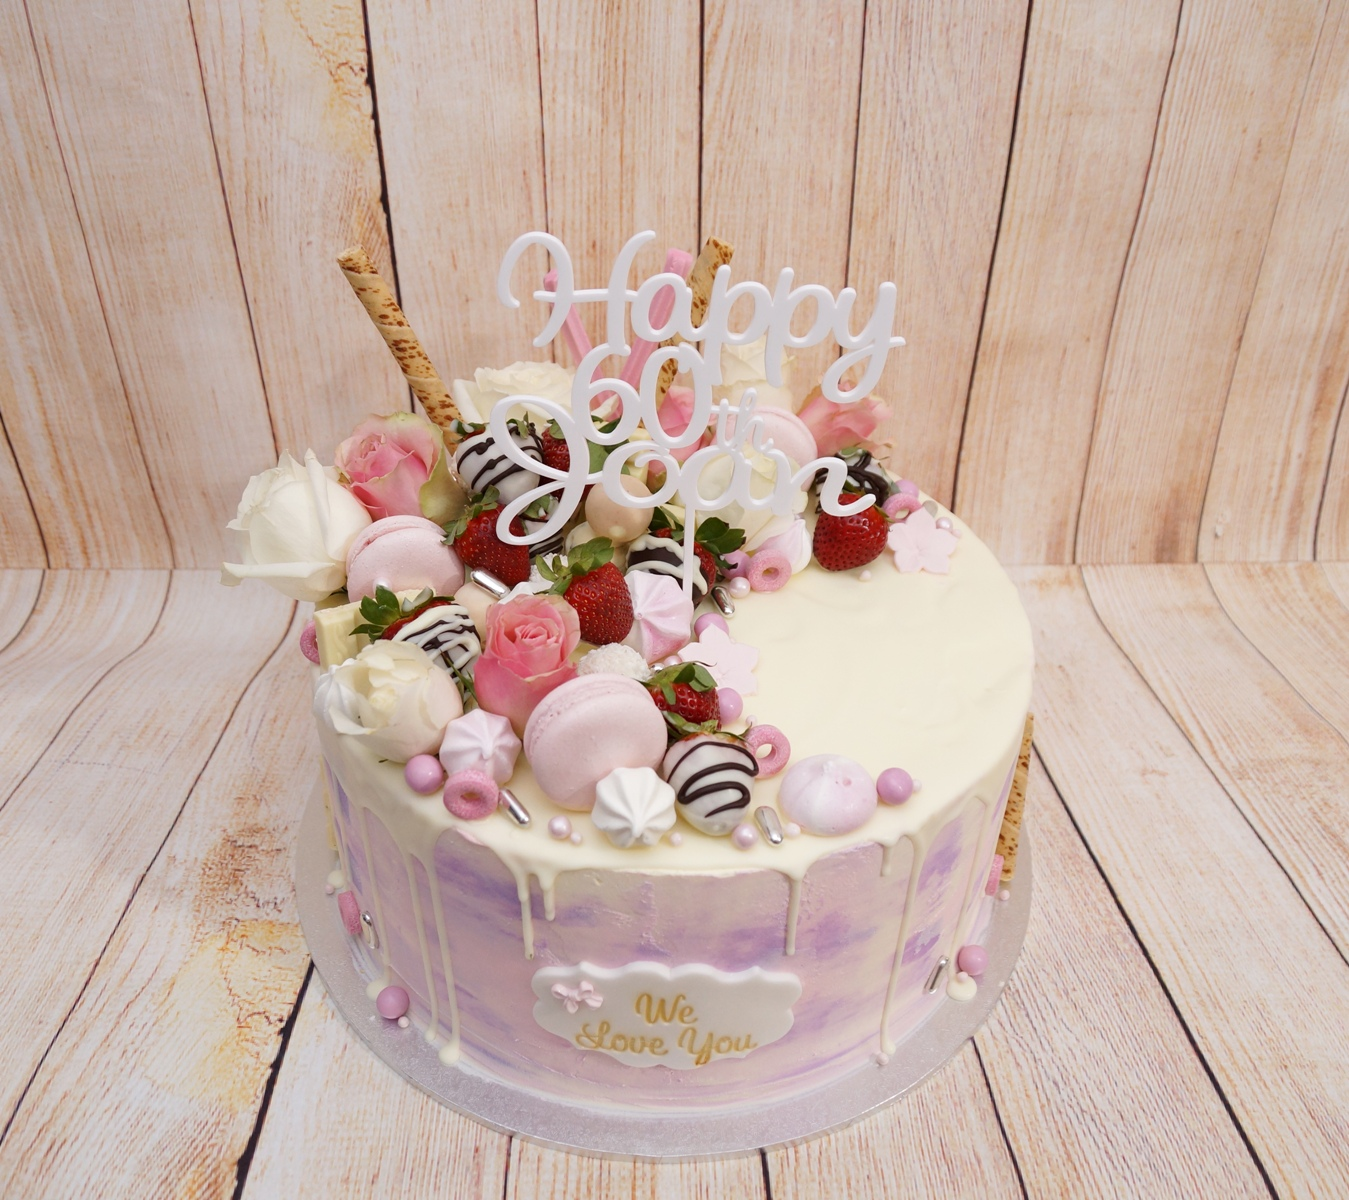 Pink mauve and white marble buttercream